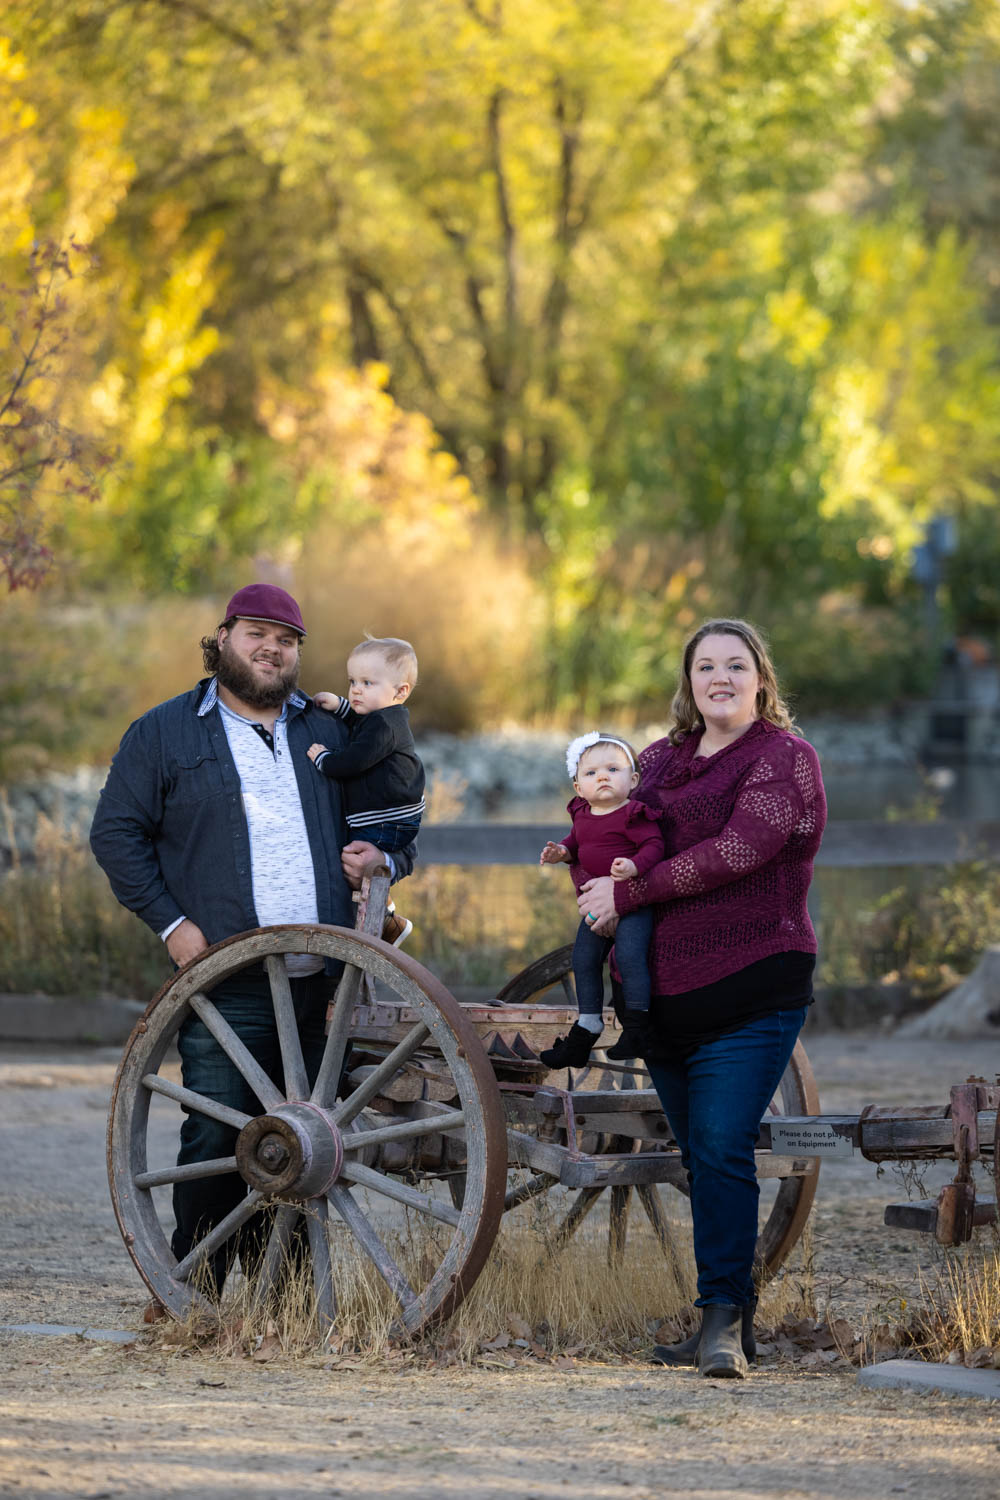 Old farm equipment and family photos